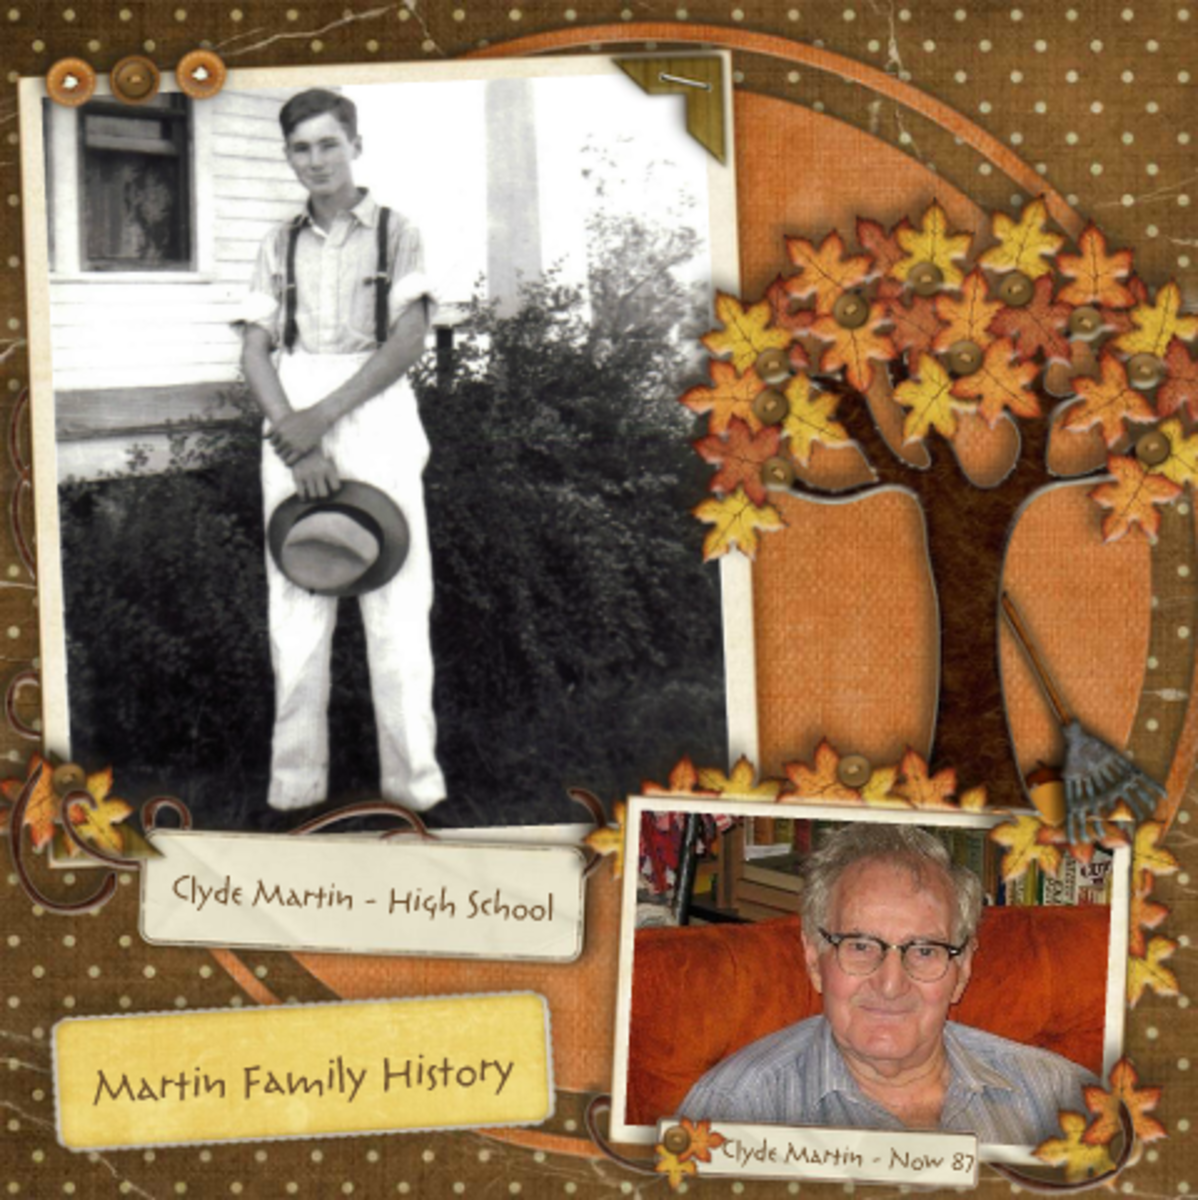 These photos of my father are nicely displayed with a scrapbook style. Scrapbook supplies like special paper and dimensional elements create a nice scene.